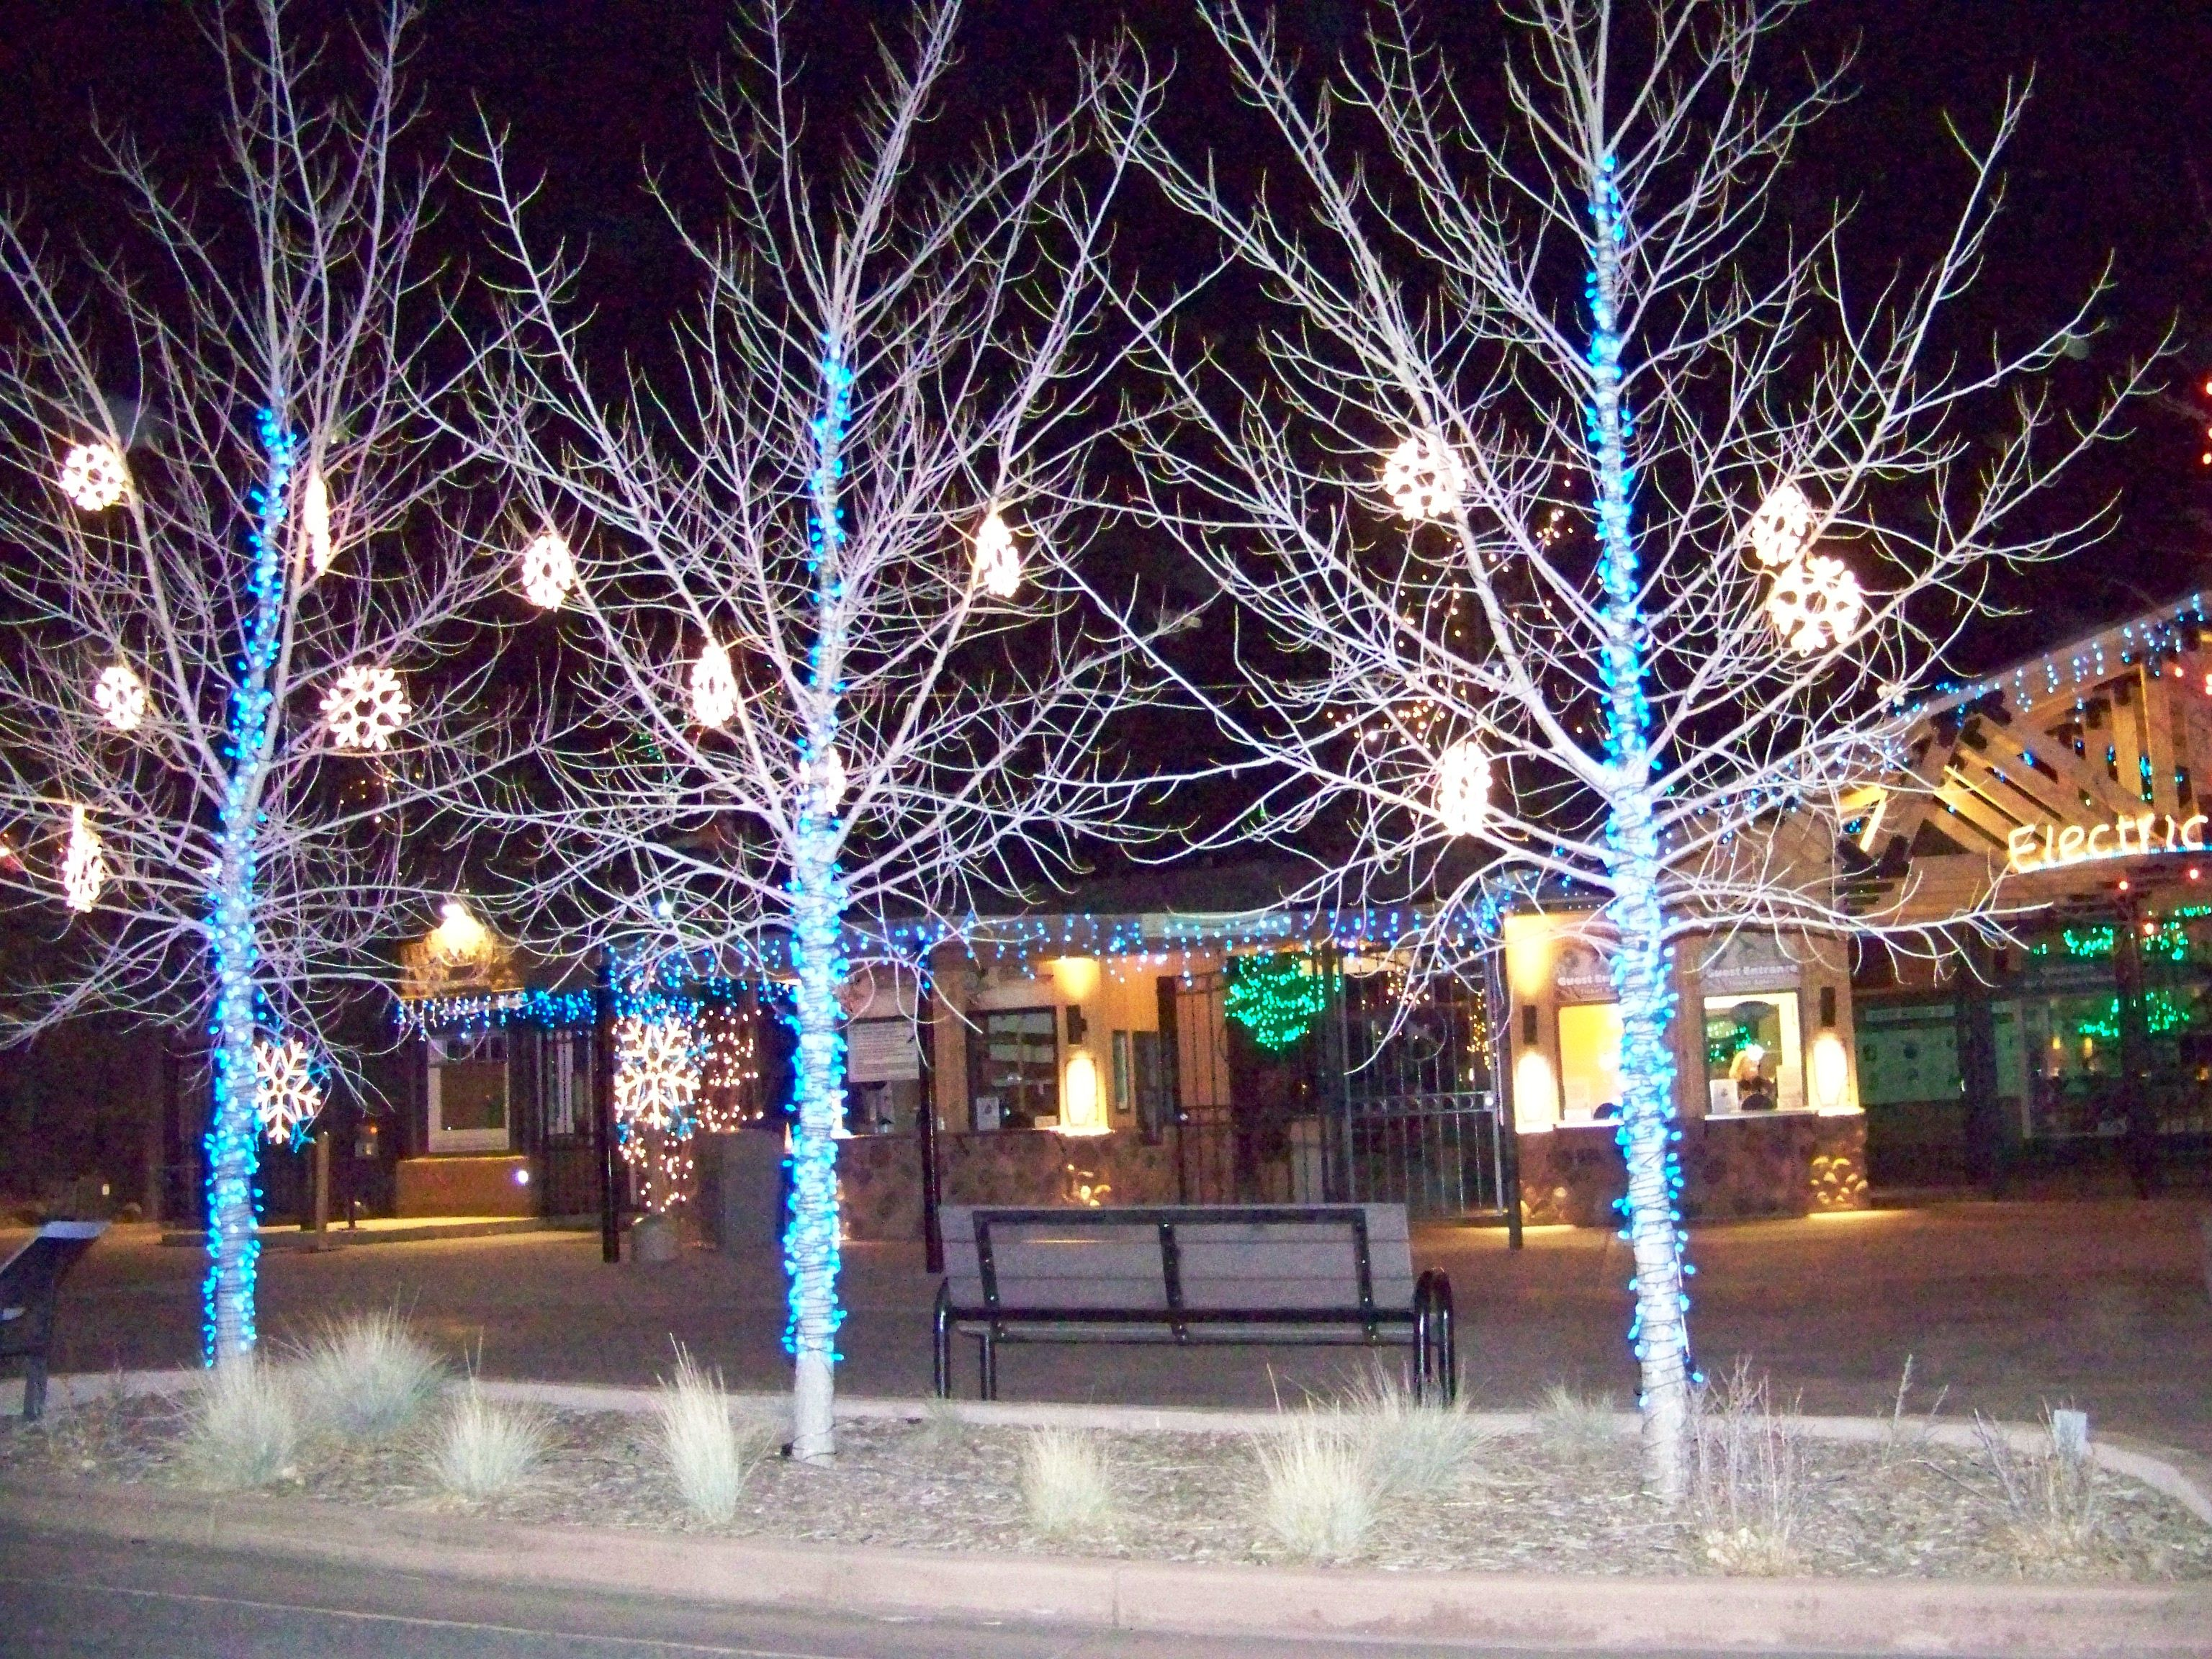 Colorado Springs Christmas.Holiday Lights In Colorado Springs All About Christmas